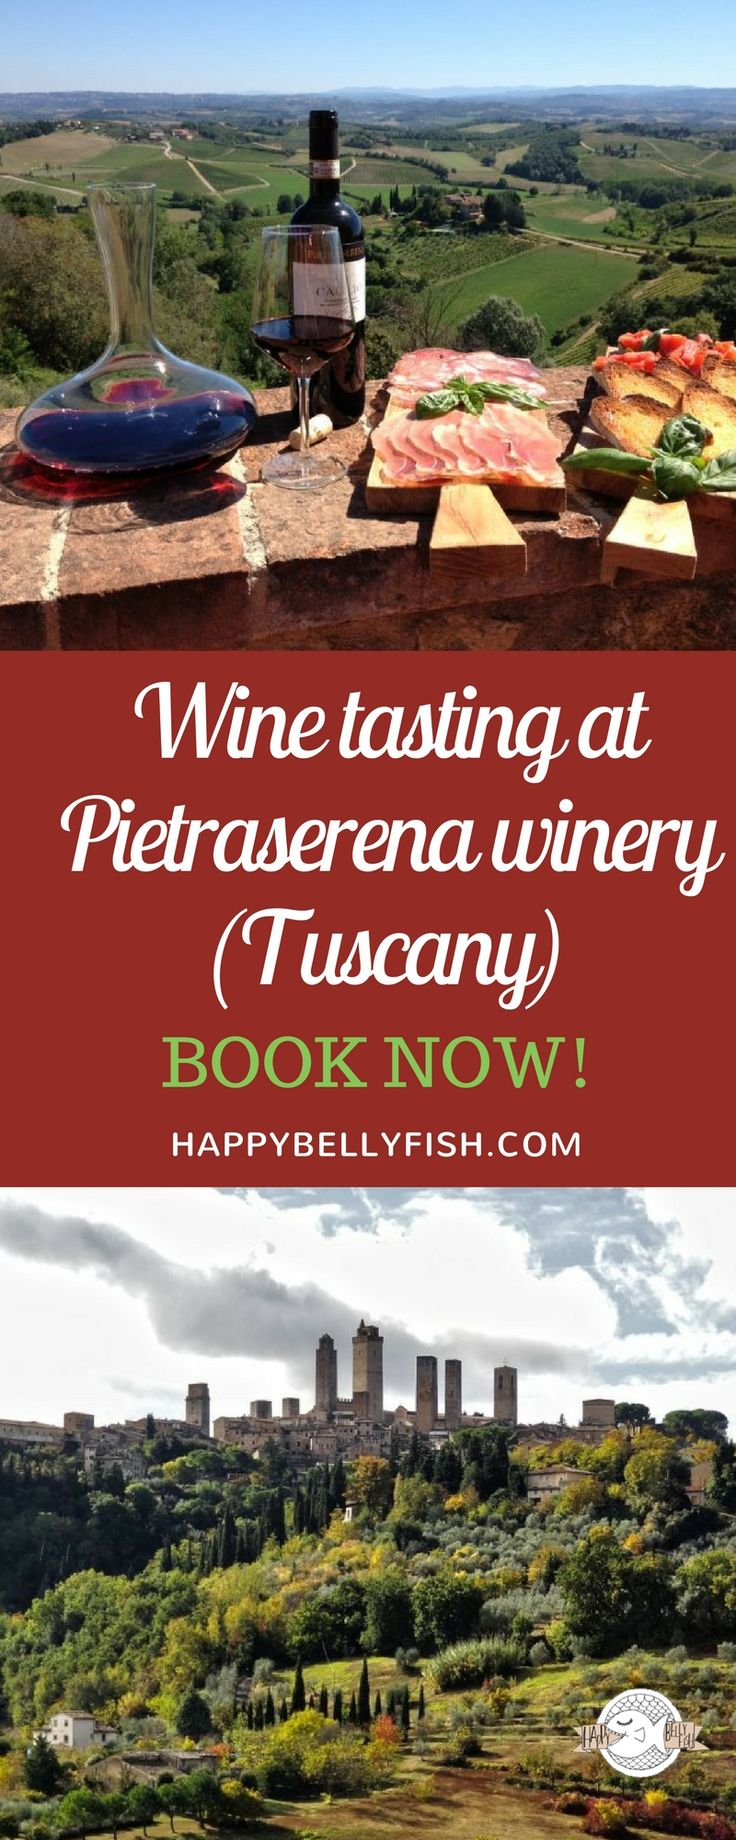 Wine tasting at Pietraserena winery (Tuscany). Book now: https://happybellyfish.com/st_location/italy/tuscany/ Дегустация вин на винодельне Pietraserena (Тоскана): https://happybellyfish.com/ru/st_location/italy/  Weintverkostung, Weinprobe in Toskana, italienischer Weinbau, italienischer Wein